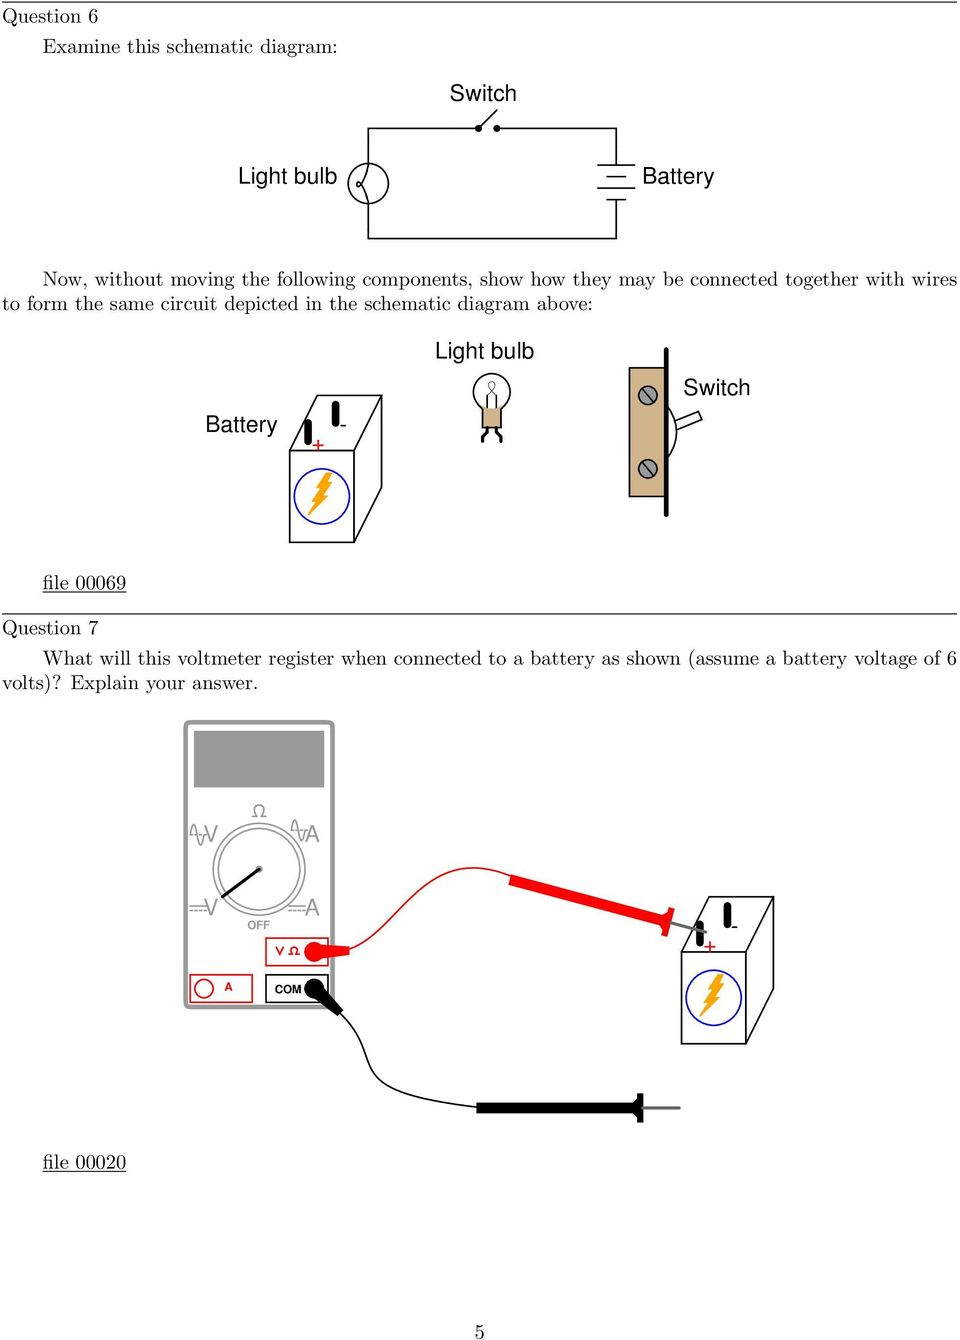 Simple Circuits Worksheet Pdf Circuit Diagram Bulb Schematic Above Light Switch Battery File 00069 Question 7 What Will This